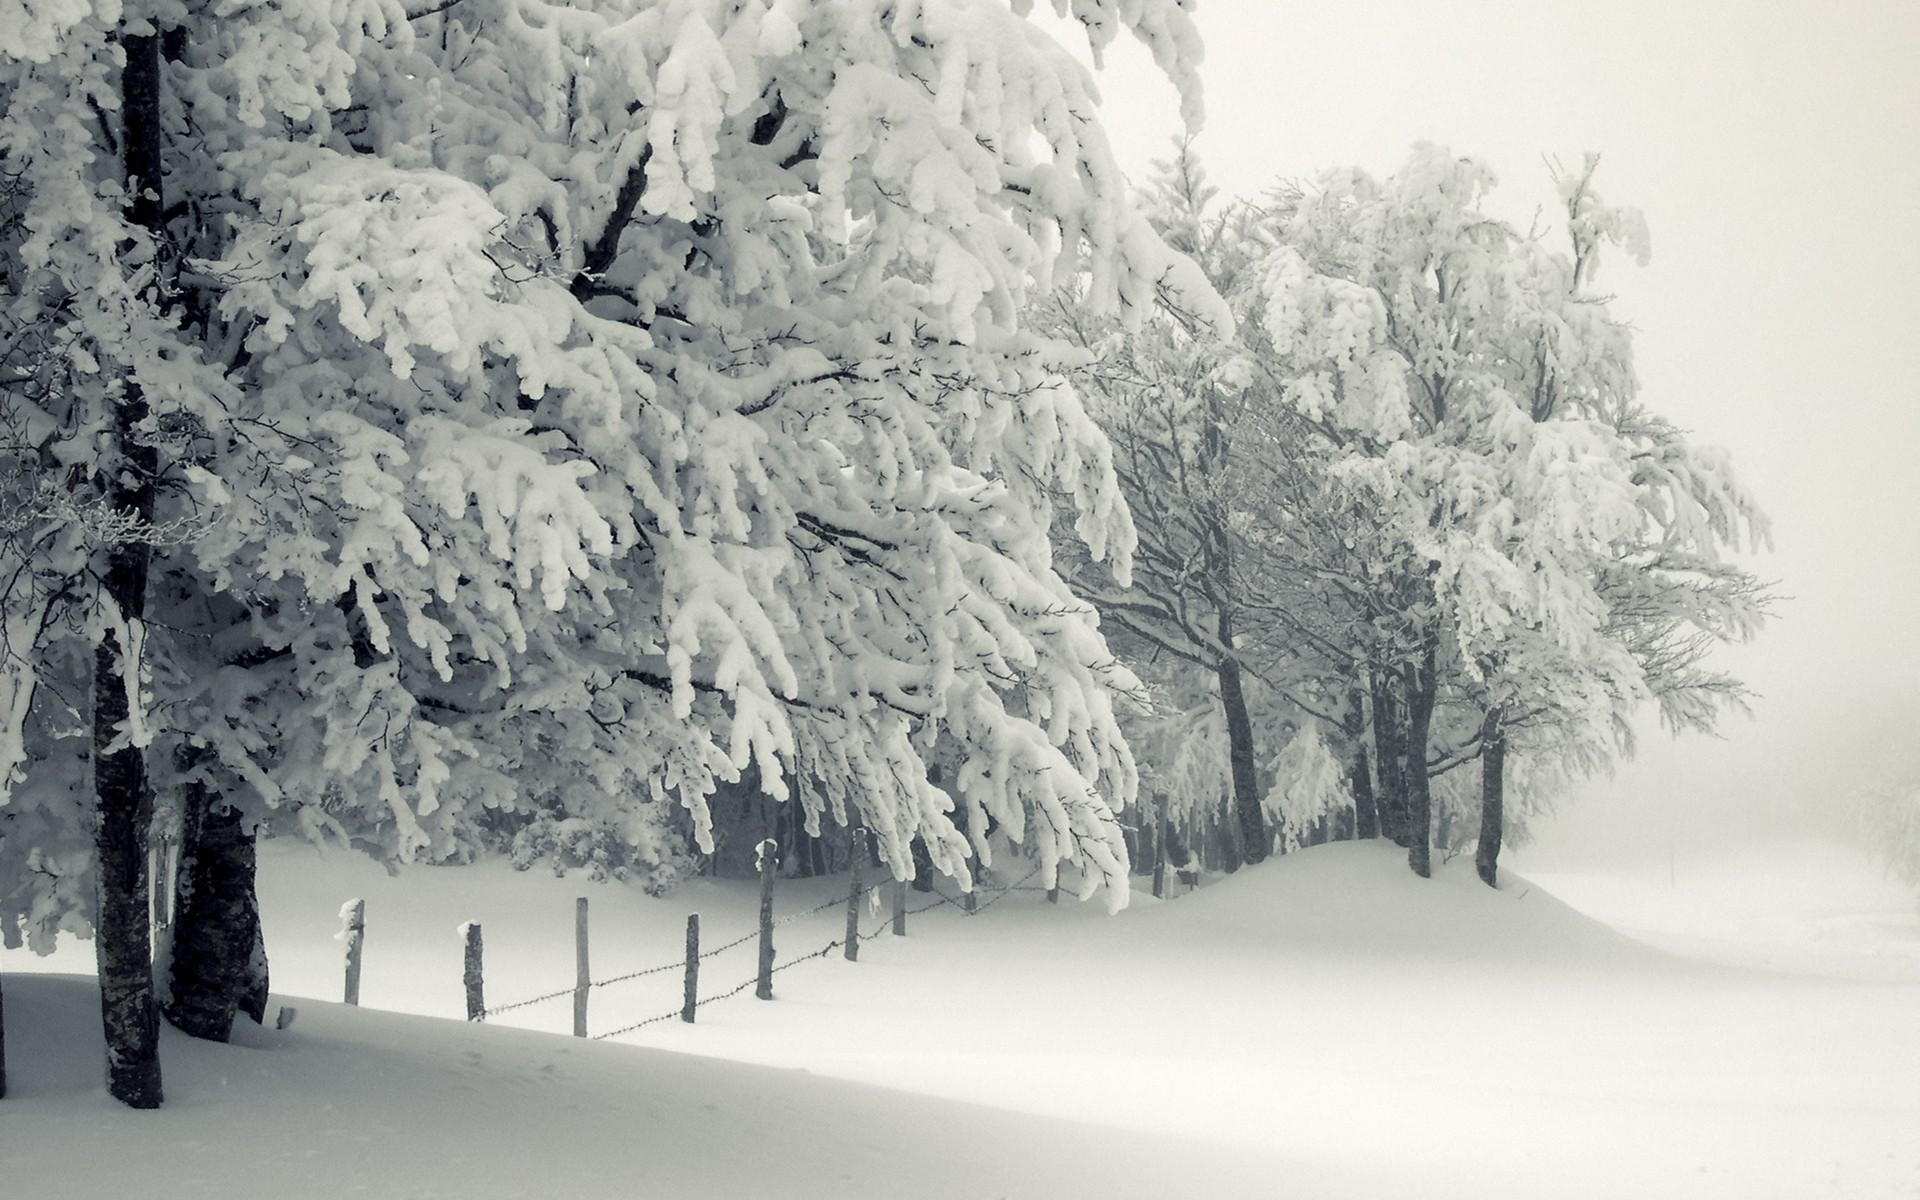 Blizzard Winter Hd Wallpaper Wallpaper List 1920x1200